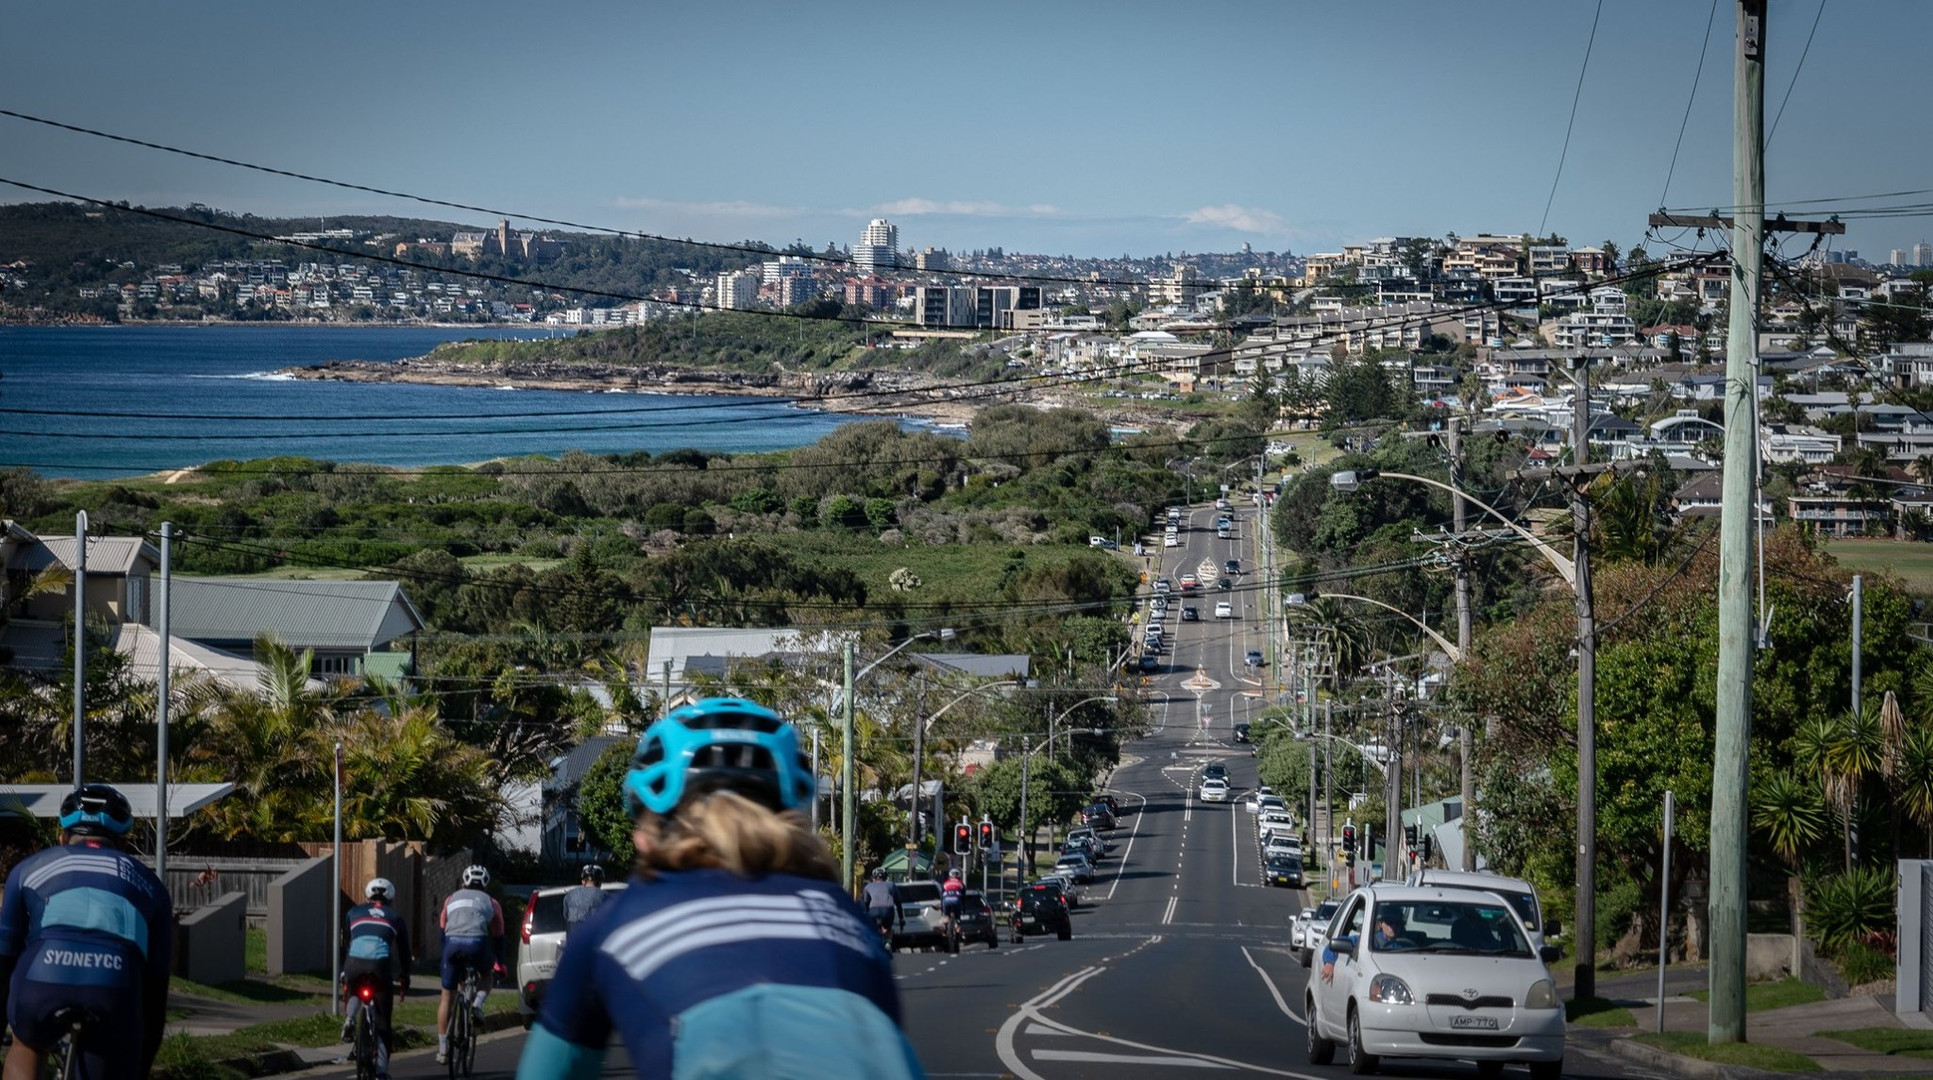 Heading into Manly on the M&M Ride